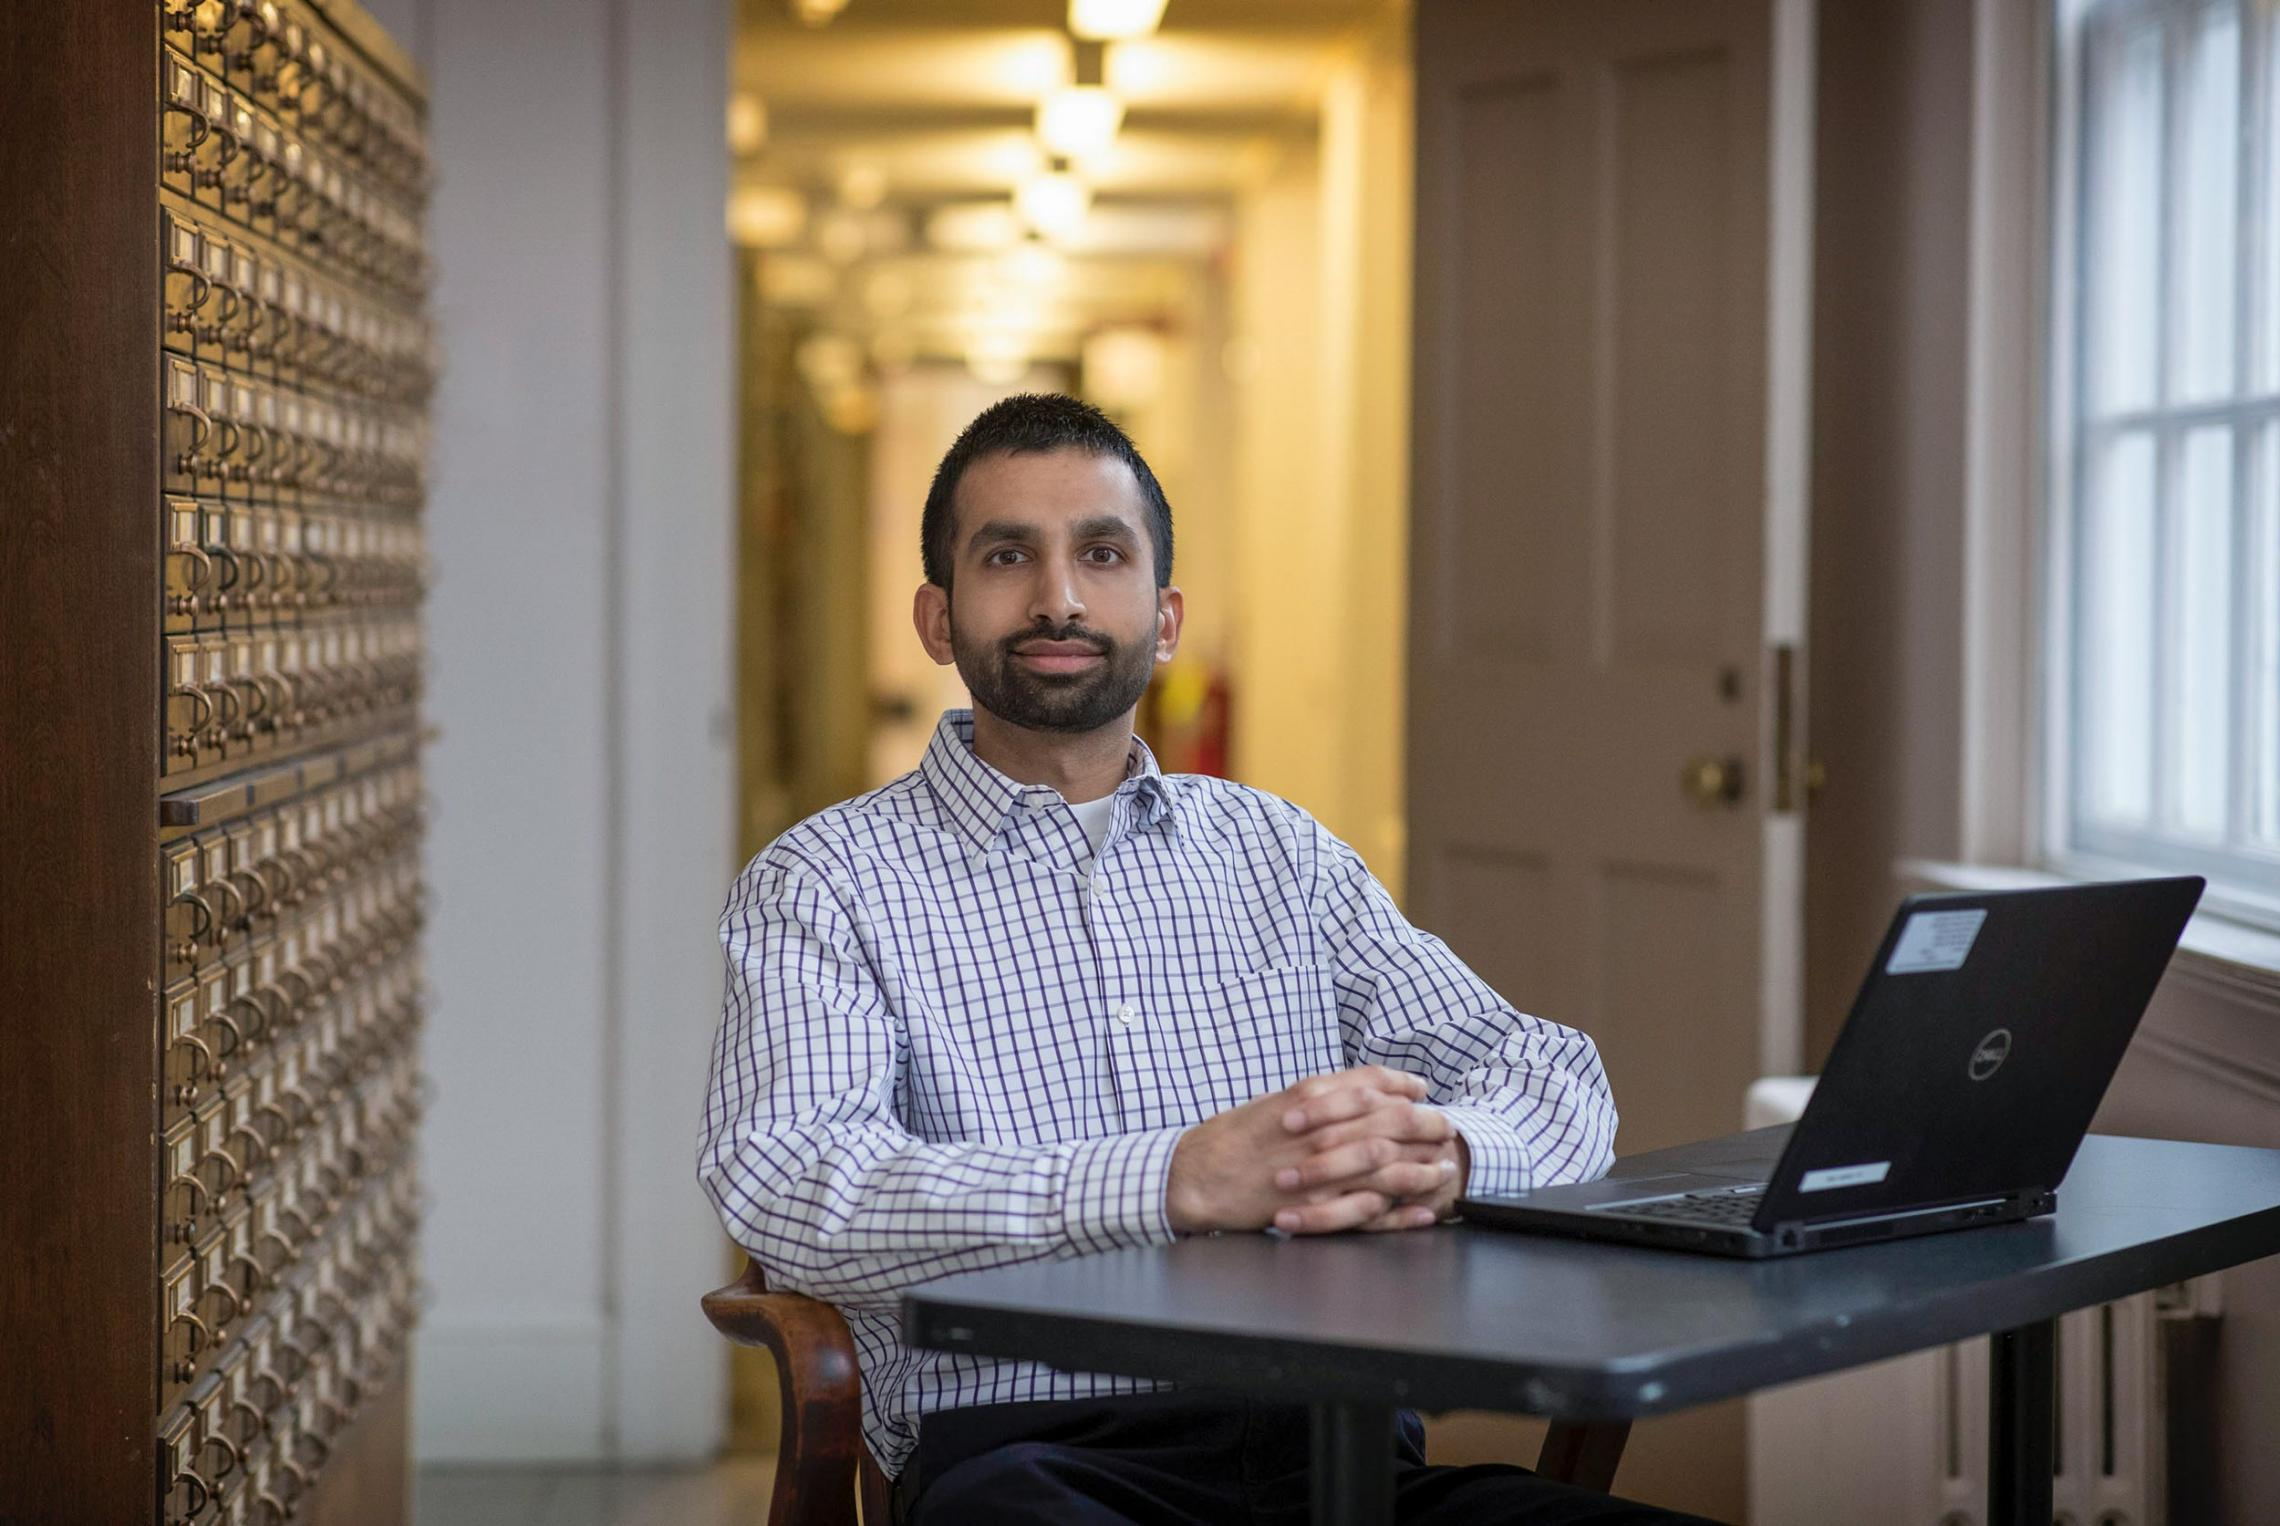 Librarian Dave Ghamandi was drawn to open-access publishing to make new scholarship available online to anyone for free.